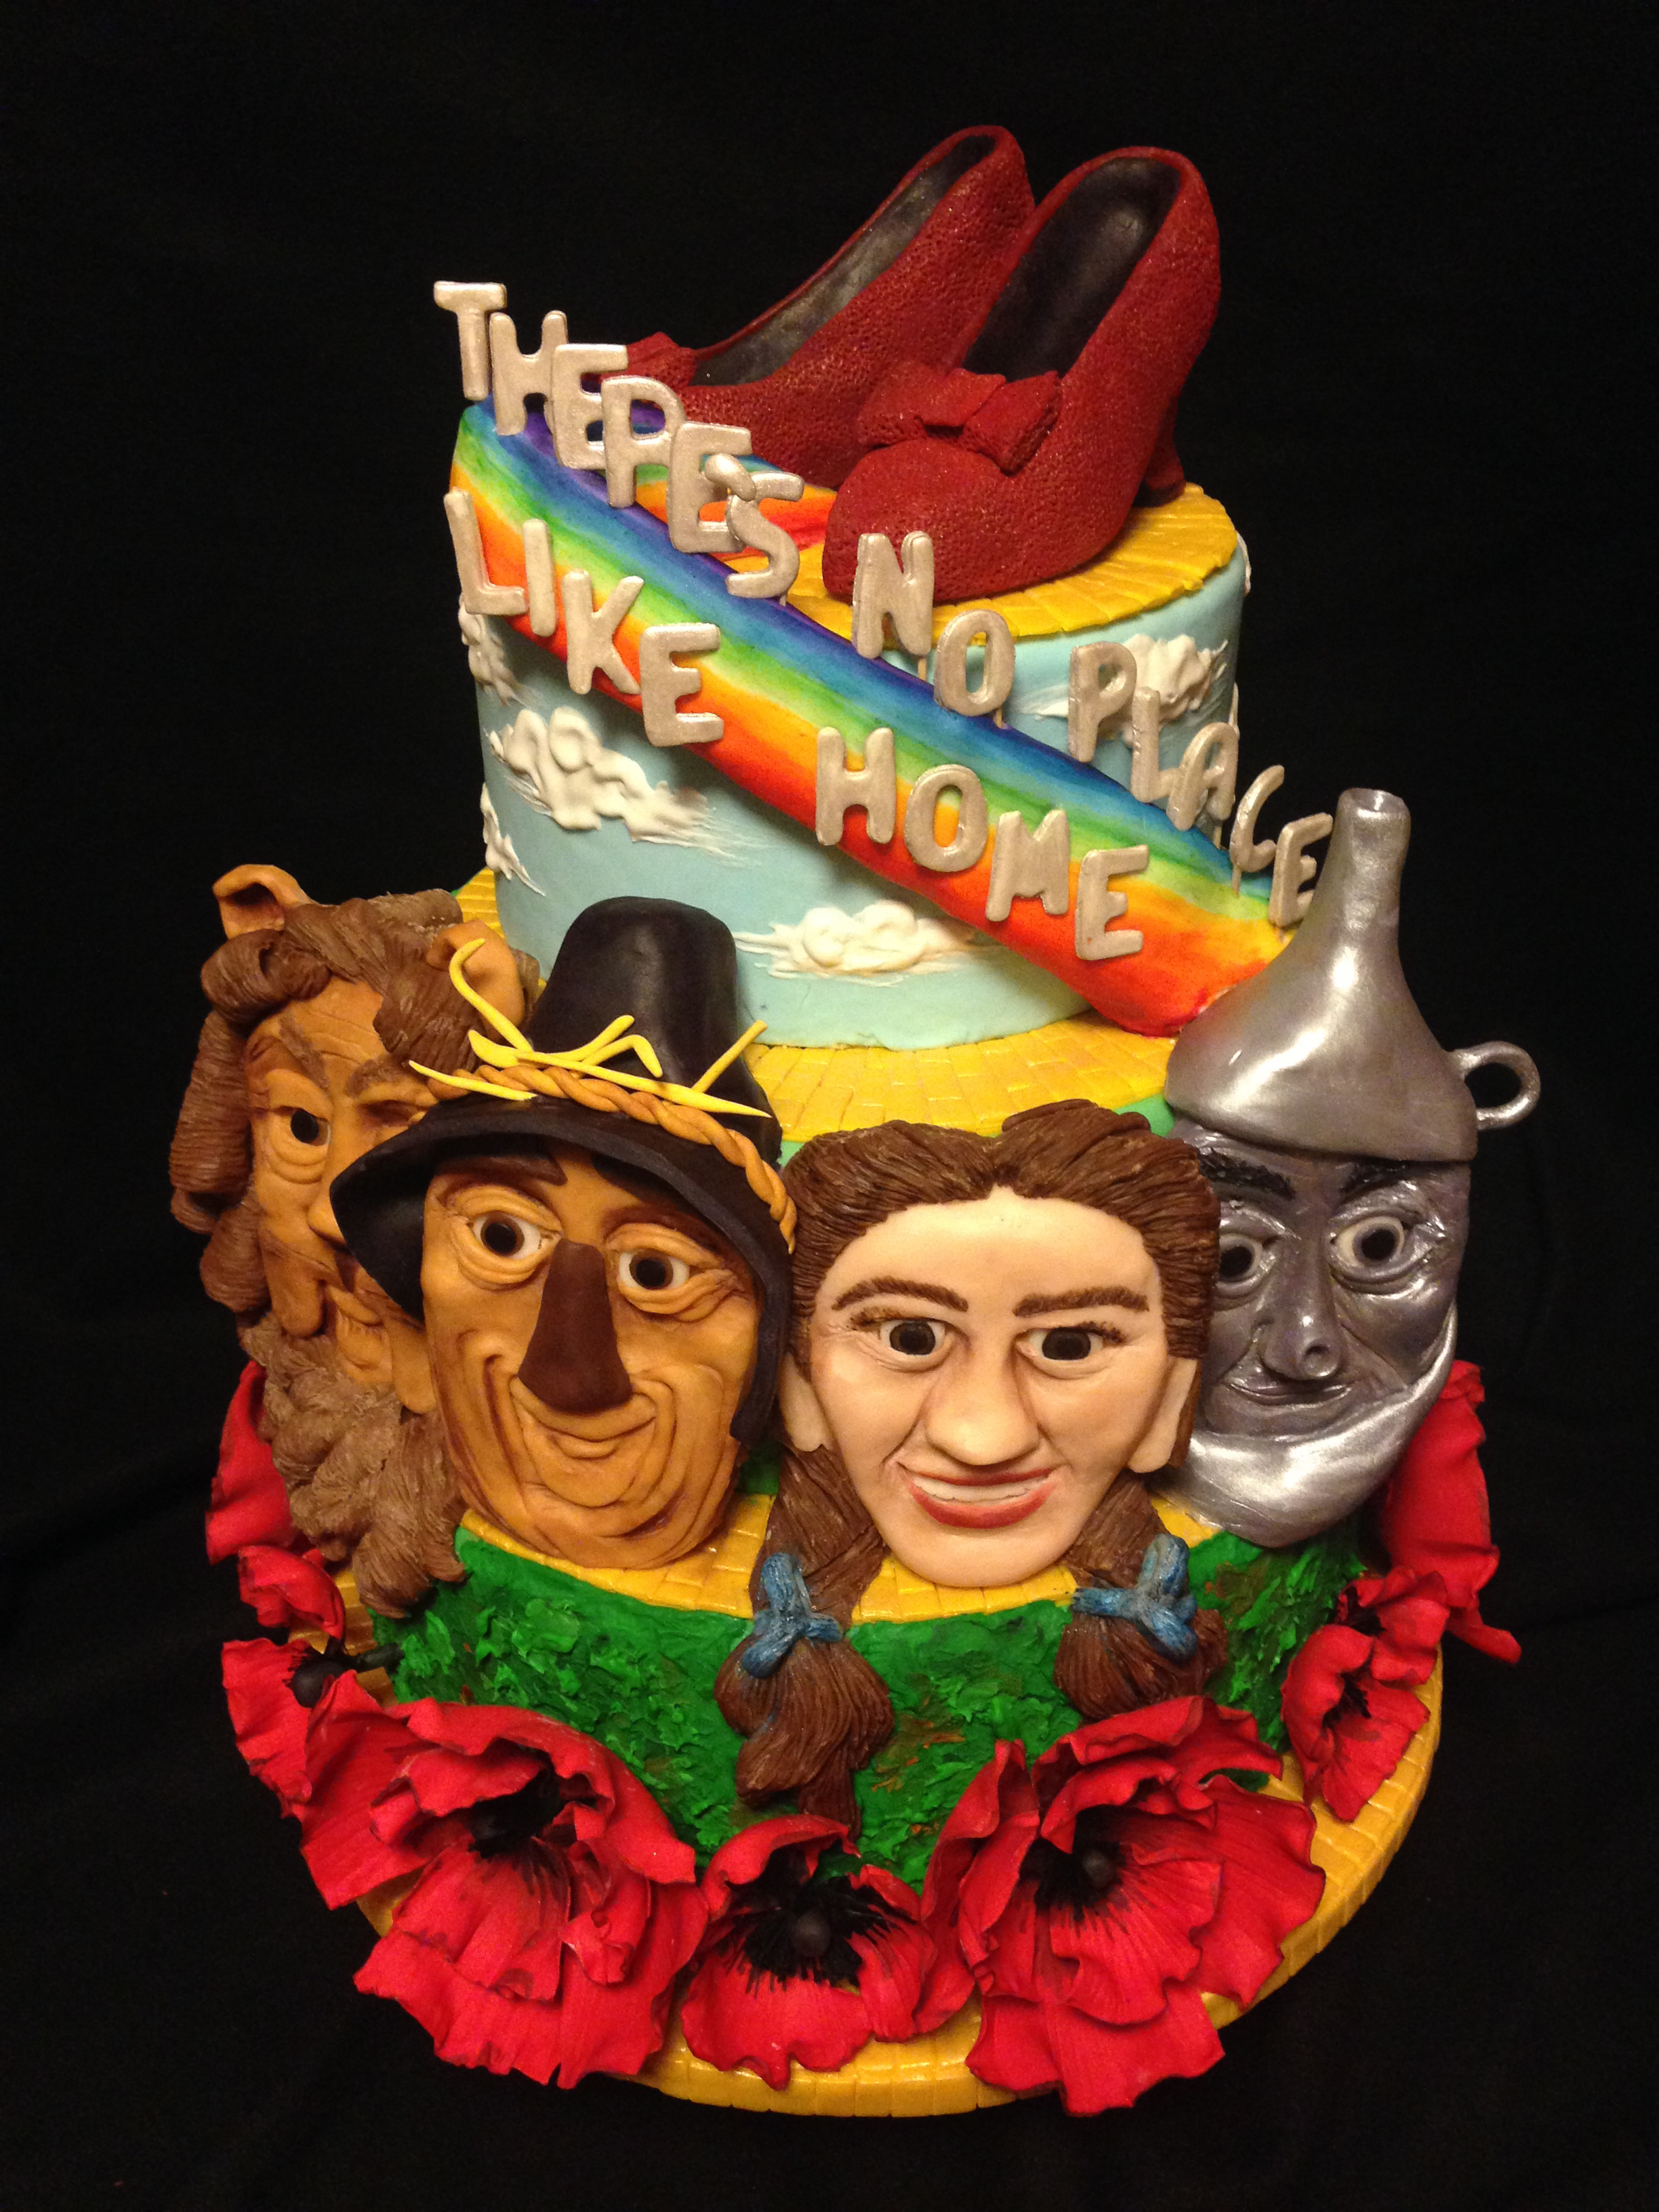 wizard of oz cake dorothy scarecrow lion tin man  sc 1 st  Melodia Cakes and Treats & Fondant and Chocolate and Icing Oh My! Creating a Wizard of Oz Cake ...